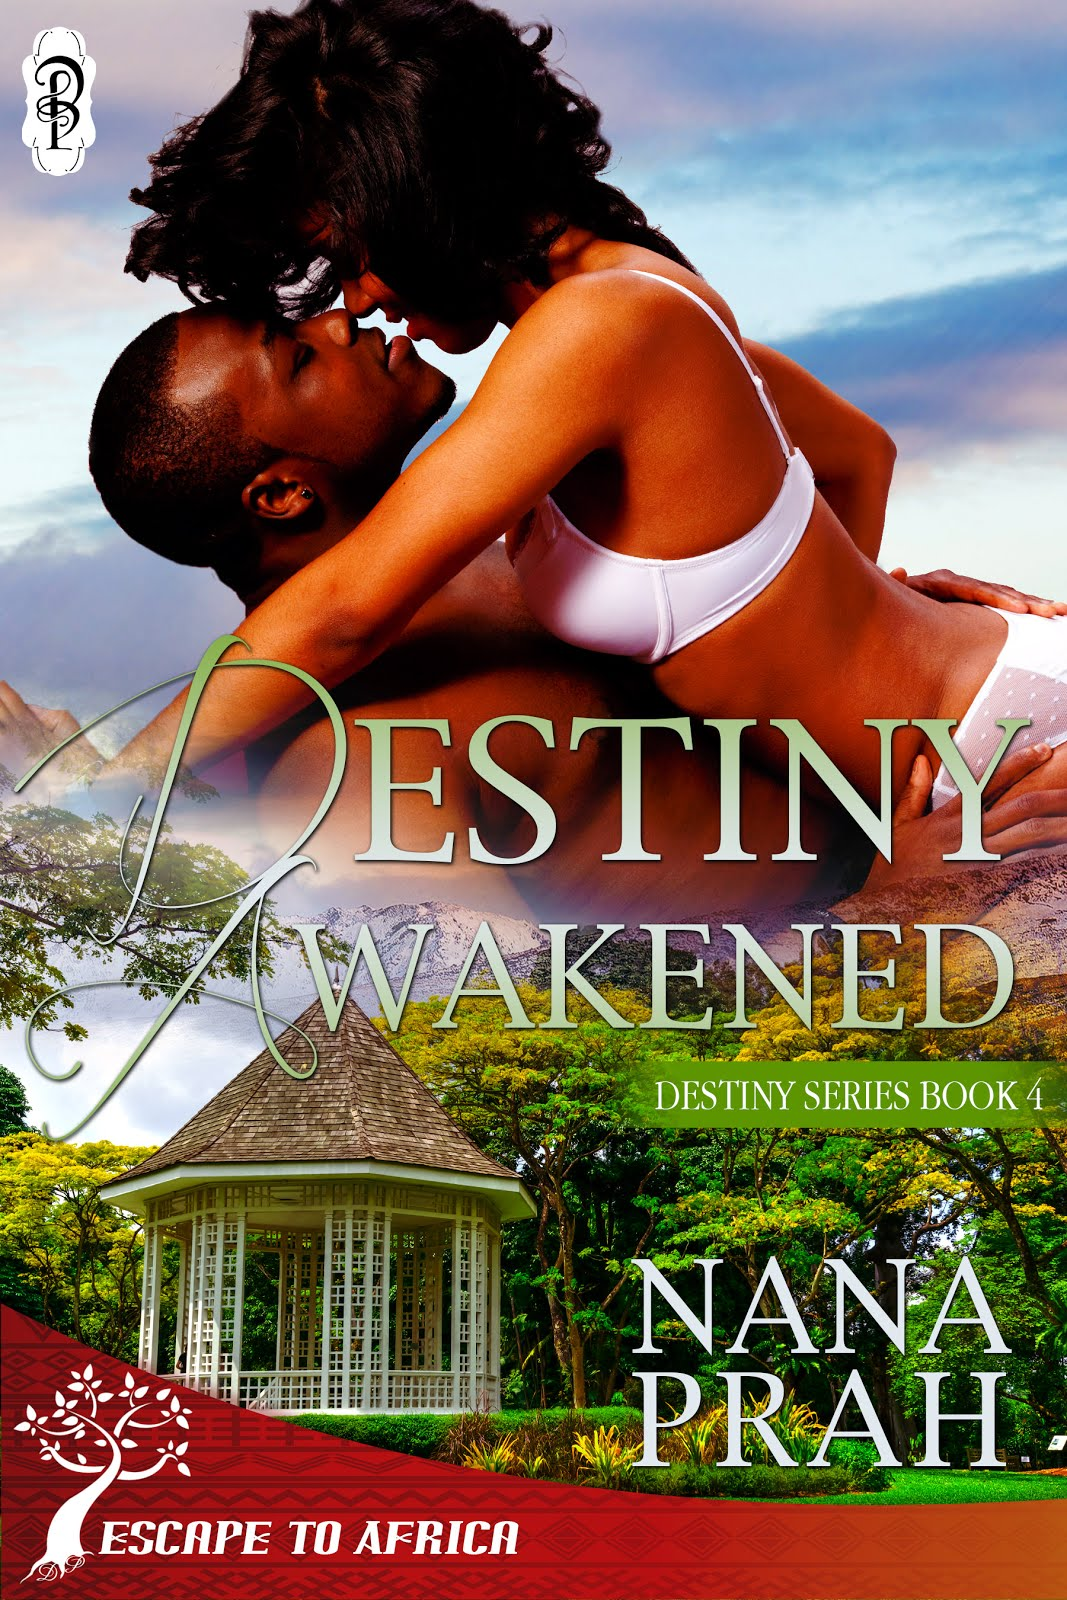 Destiny Awakened by Nana Prah